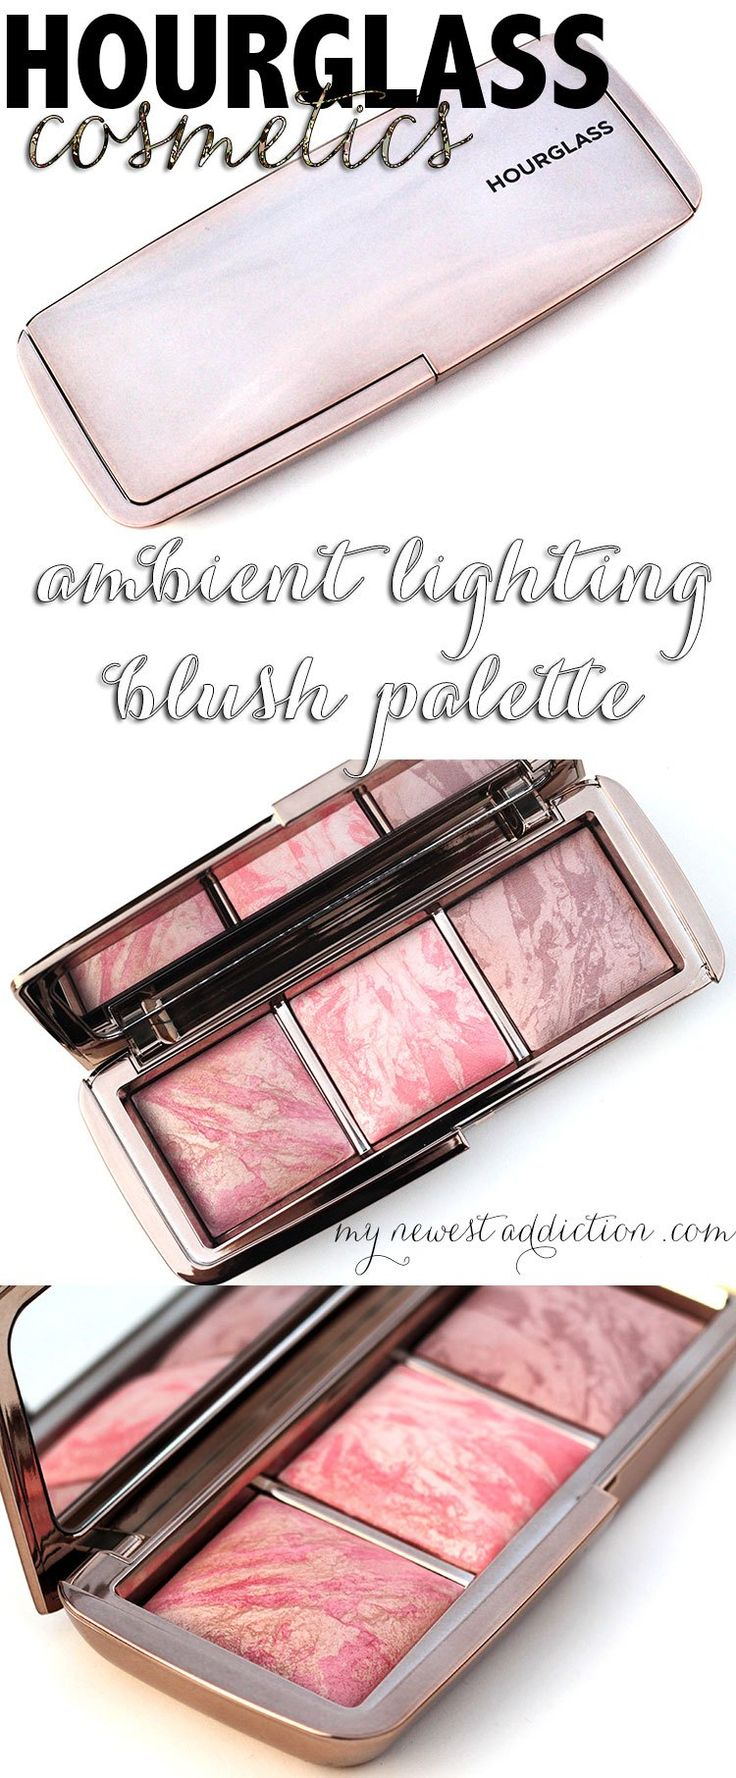 The best blush palette on the planet! @hourglassmakeup Hourglass Cosmetics Ambient Lighting Blush Palette - http://www.mynewestaddiction.com/2014/10/hourglass-ambient-lighting-blush-palette.html